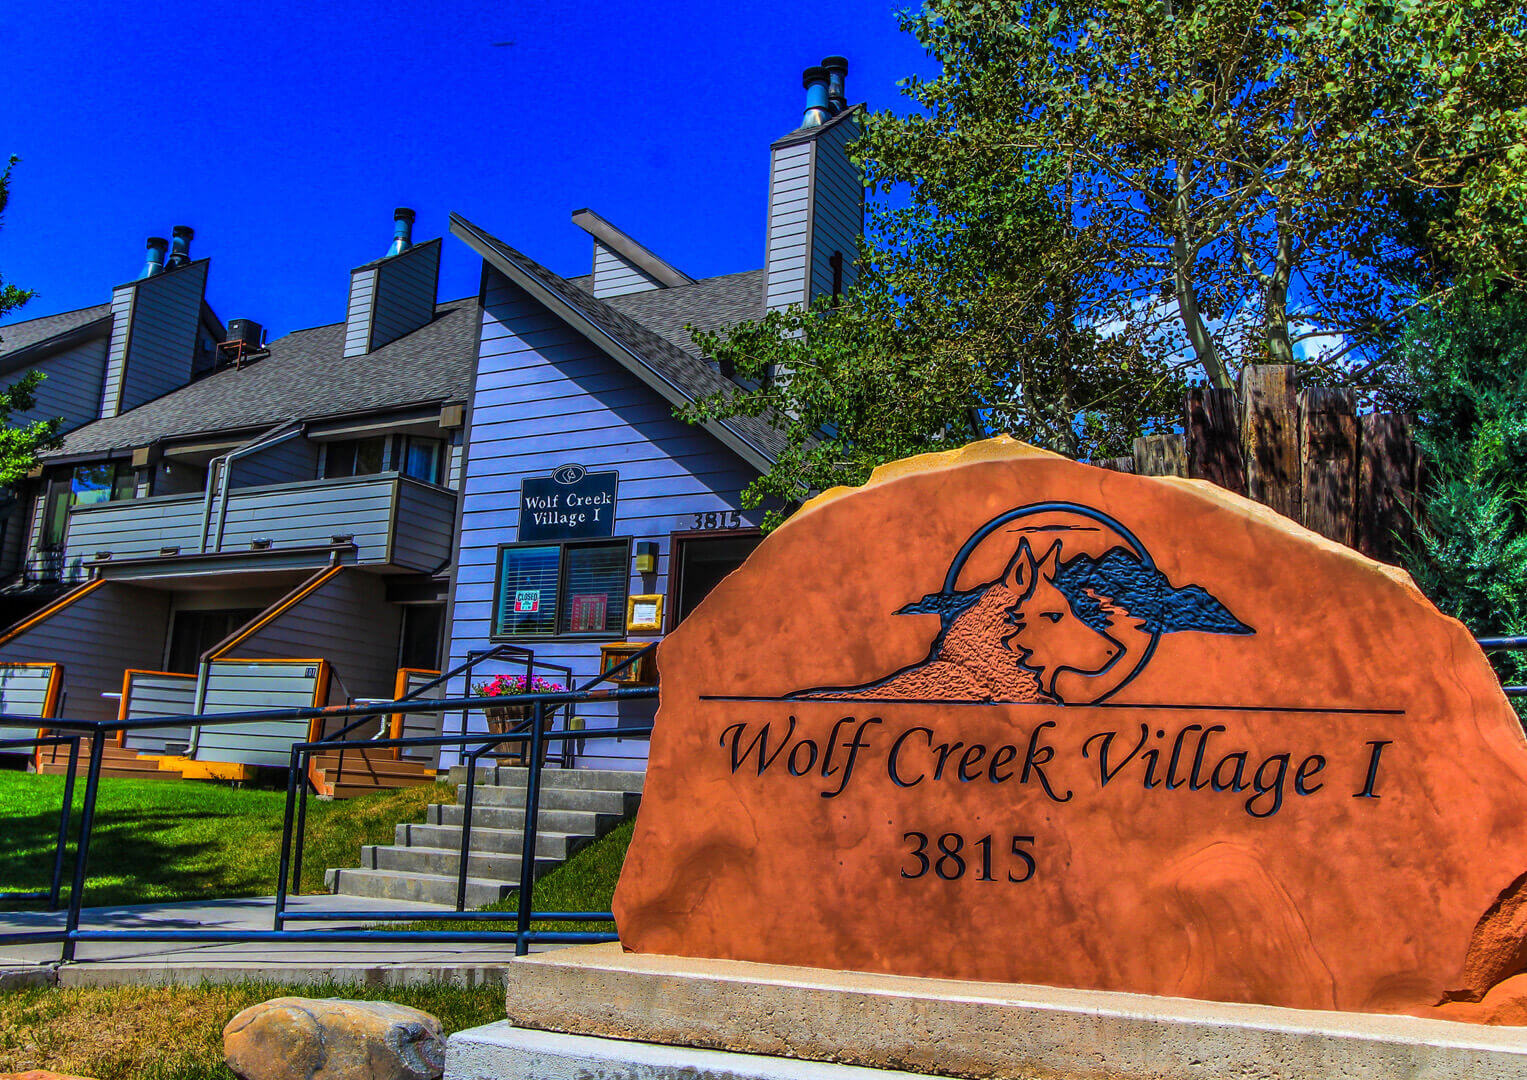 Wolf Creek Village I Signage